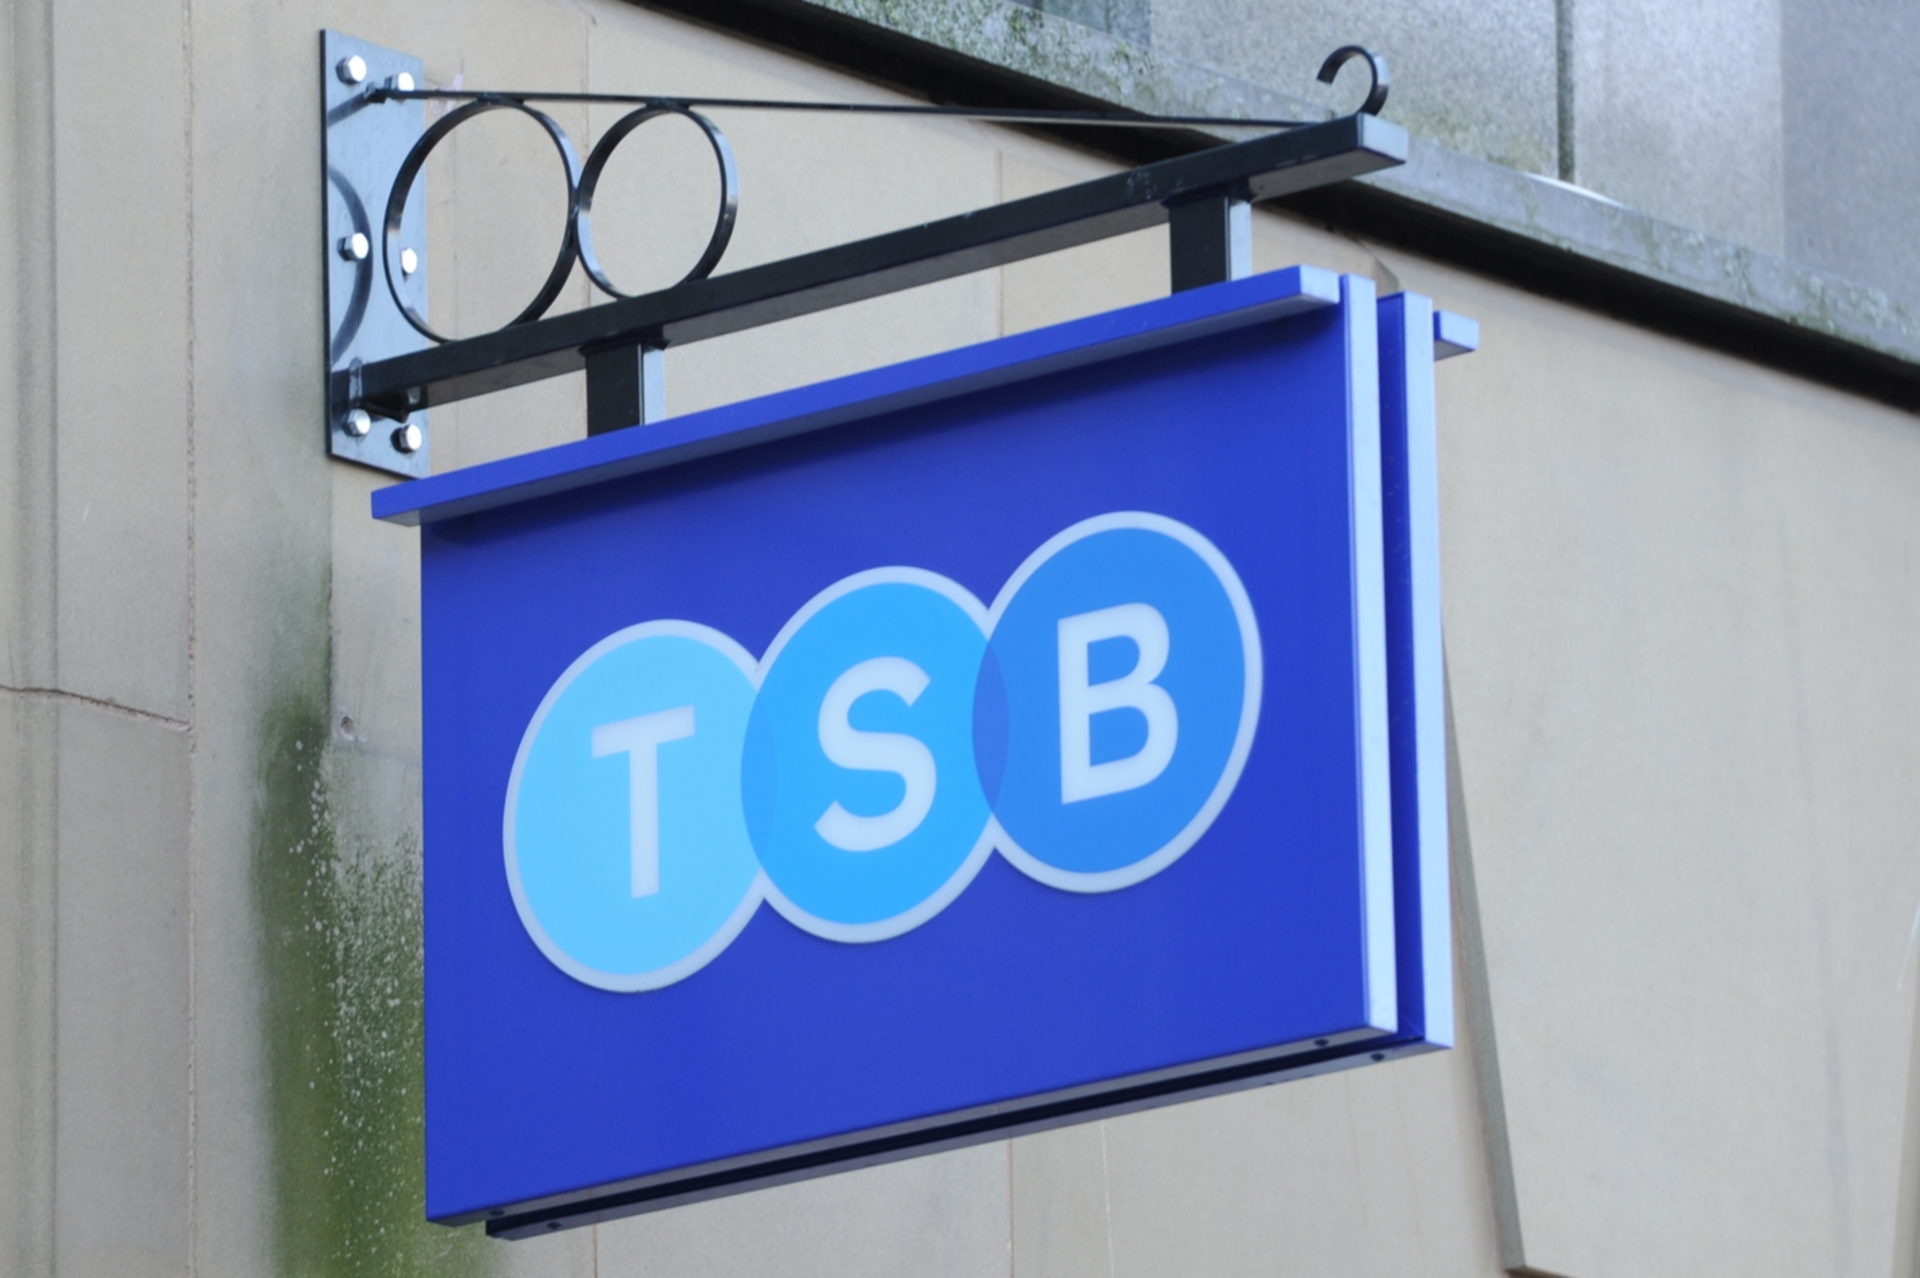 TSB online meltdown shows importance of keeping branches open, says